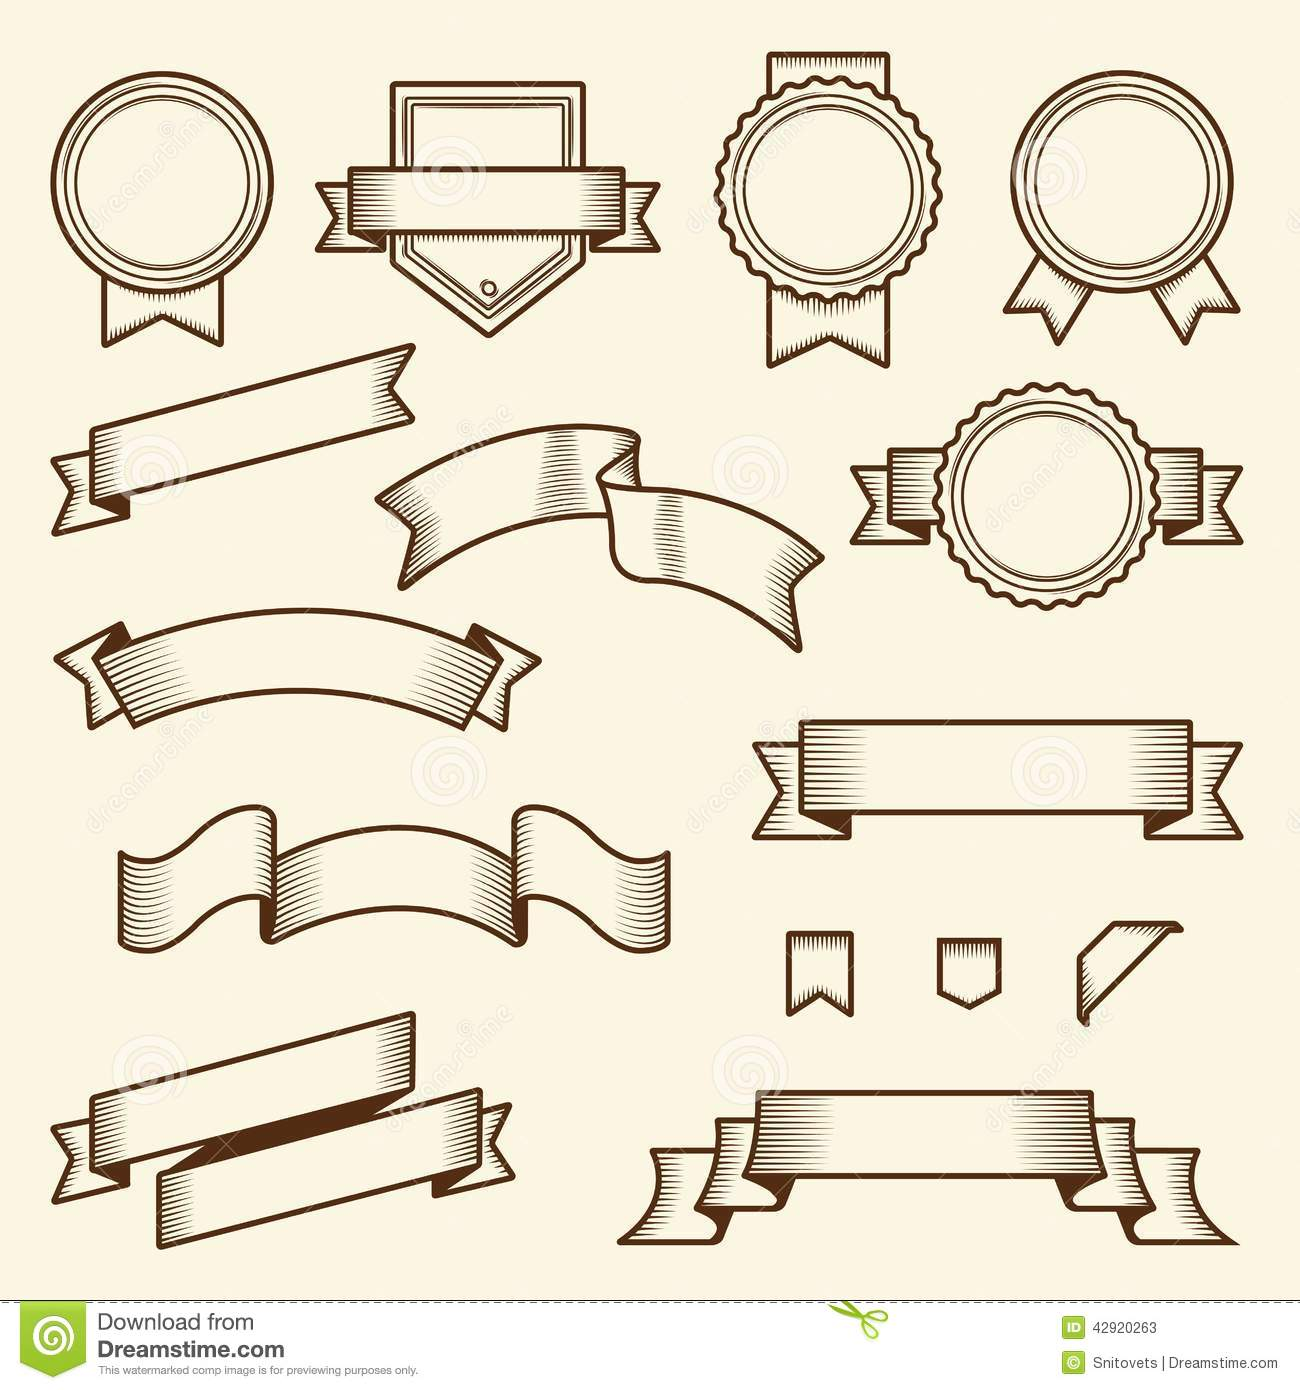 Line Art Design Vector : Set of vintage ribbons and labels isolated on white